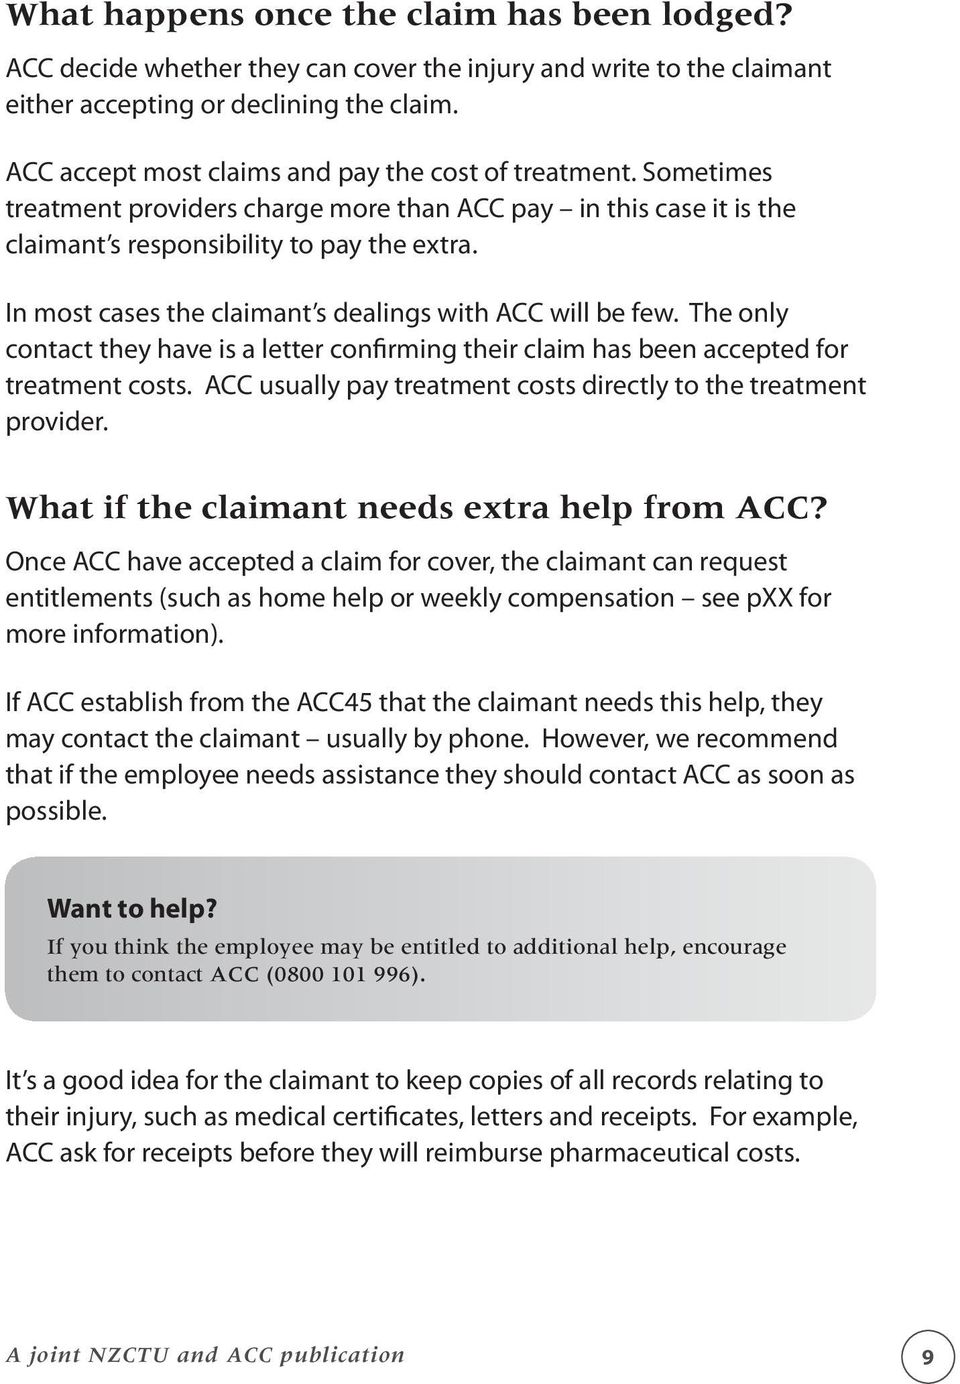 In most cases the claimant s dealings with ACC will be few. The only contact they have is a letter confirming their claim has been accepted for treatment costs.